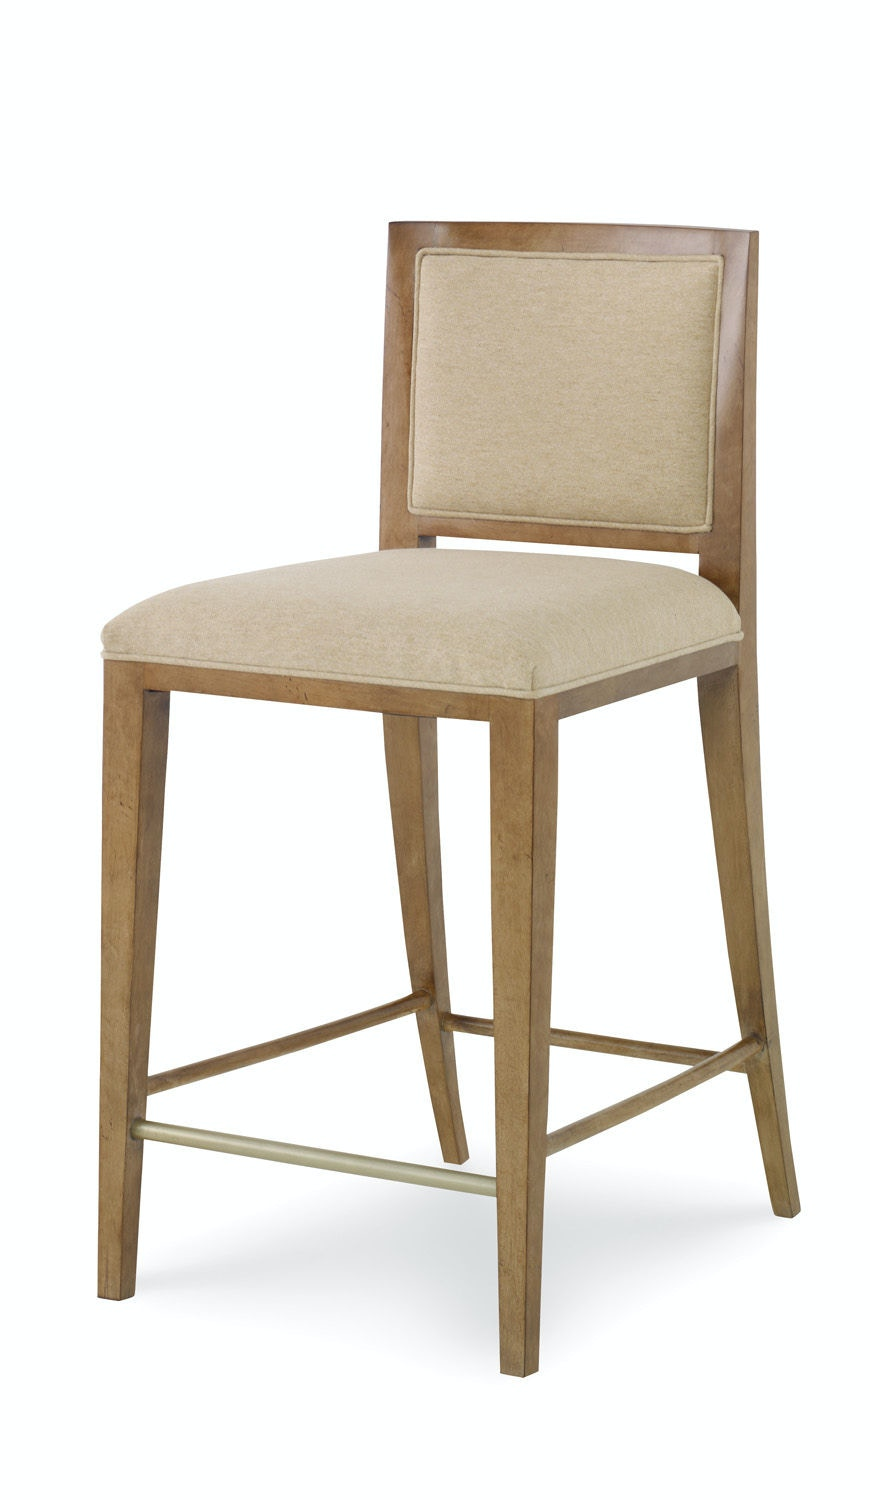 Kravet Dining Room Beckley Counter Stools H3822 C Kravet  : h3822c1 from search.kravet.com size 870 x 1500 jpeg 61kB